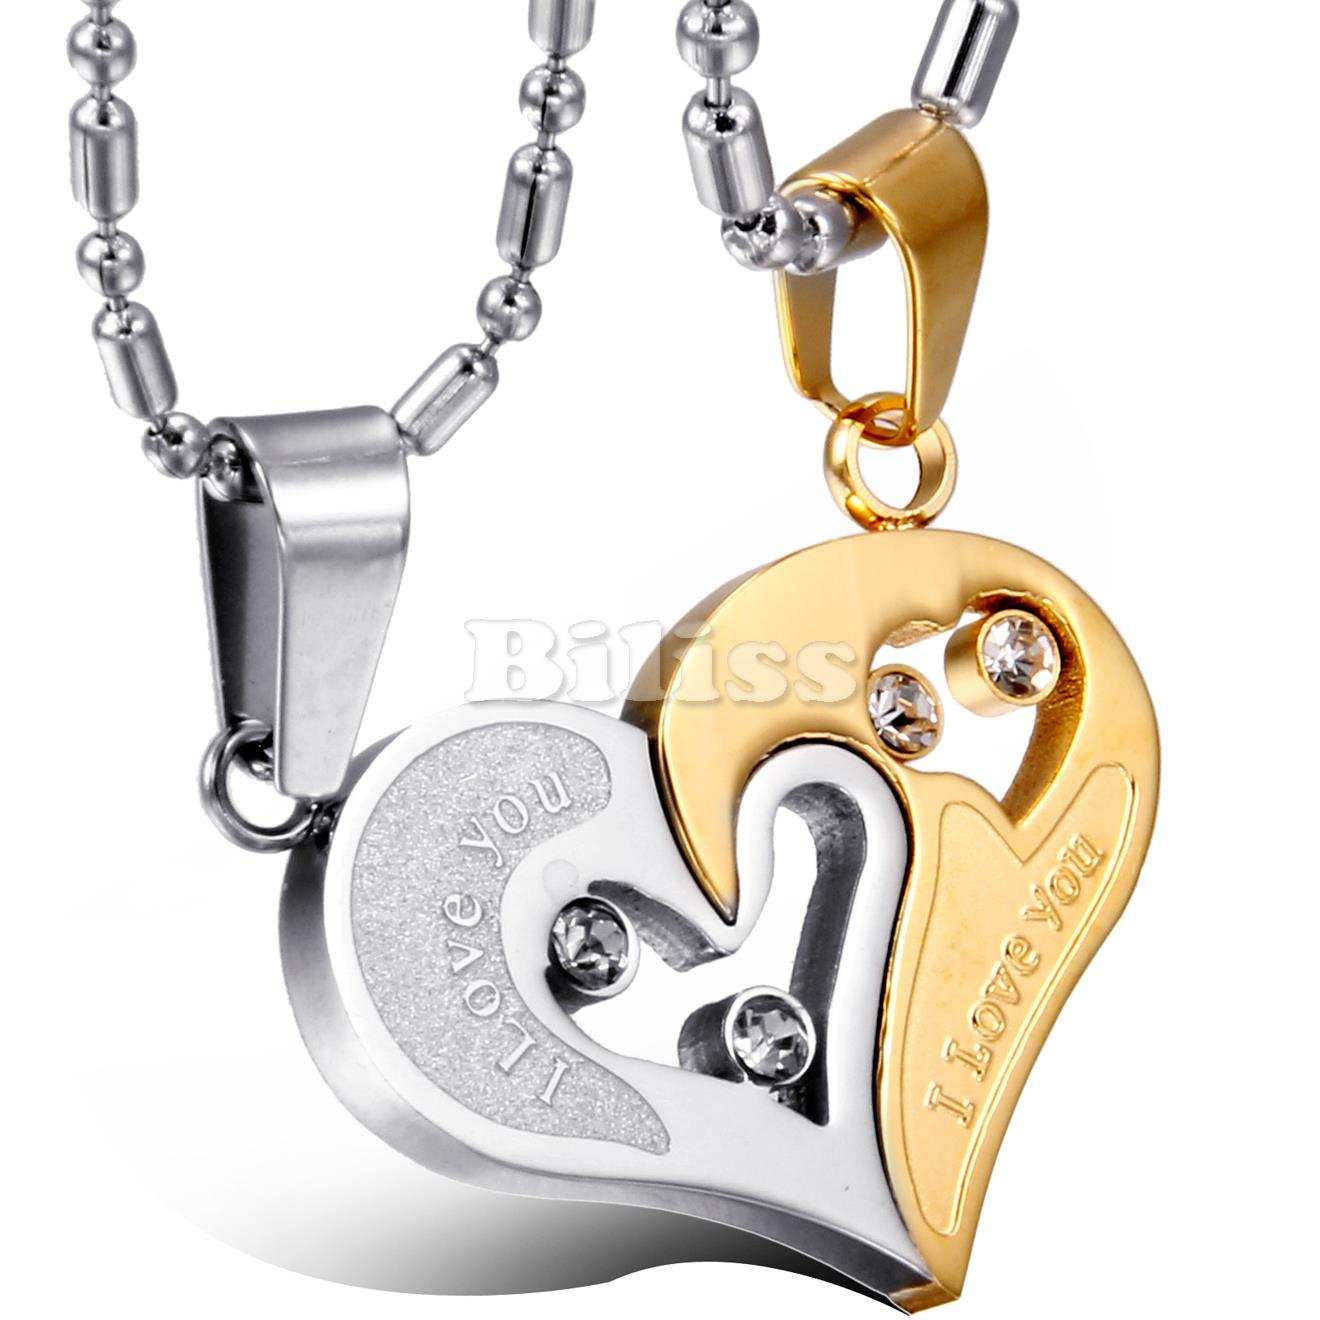 c32564b8c1 2 pcs/pair His and Hers Matching Heart Stainless Steel Pendant I ...